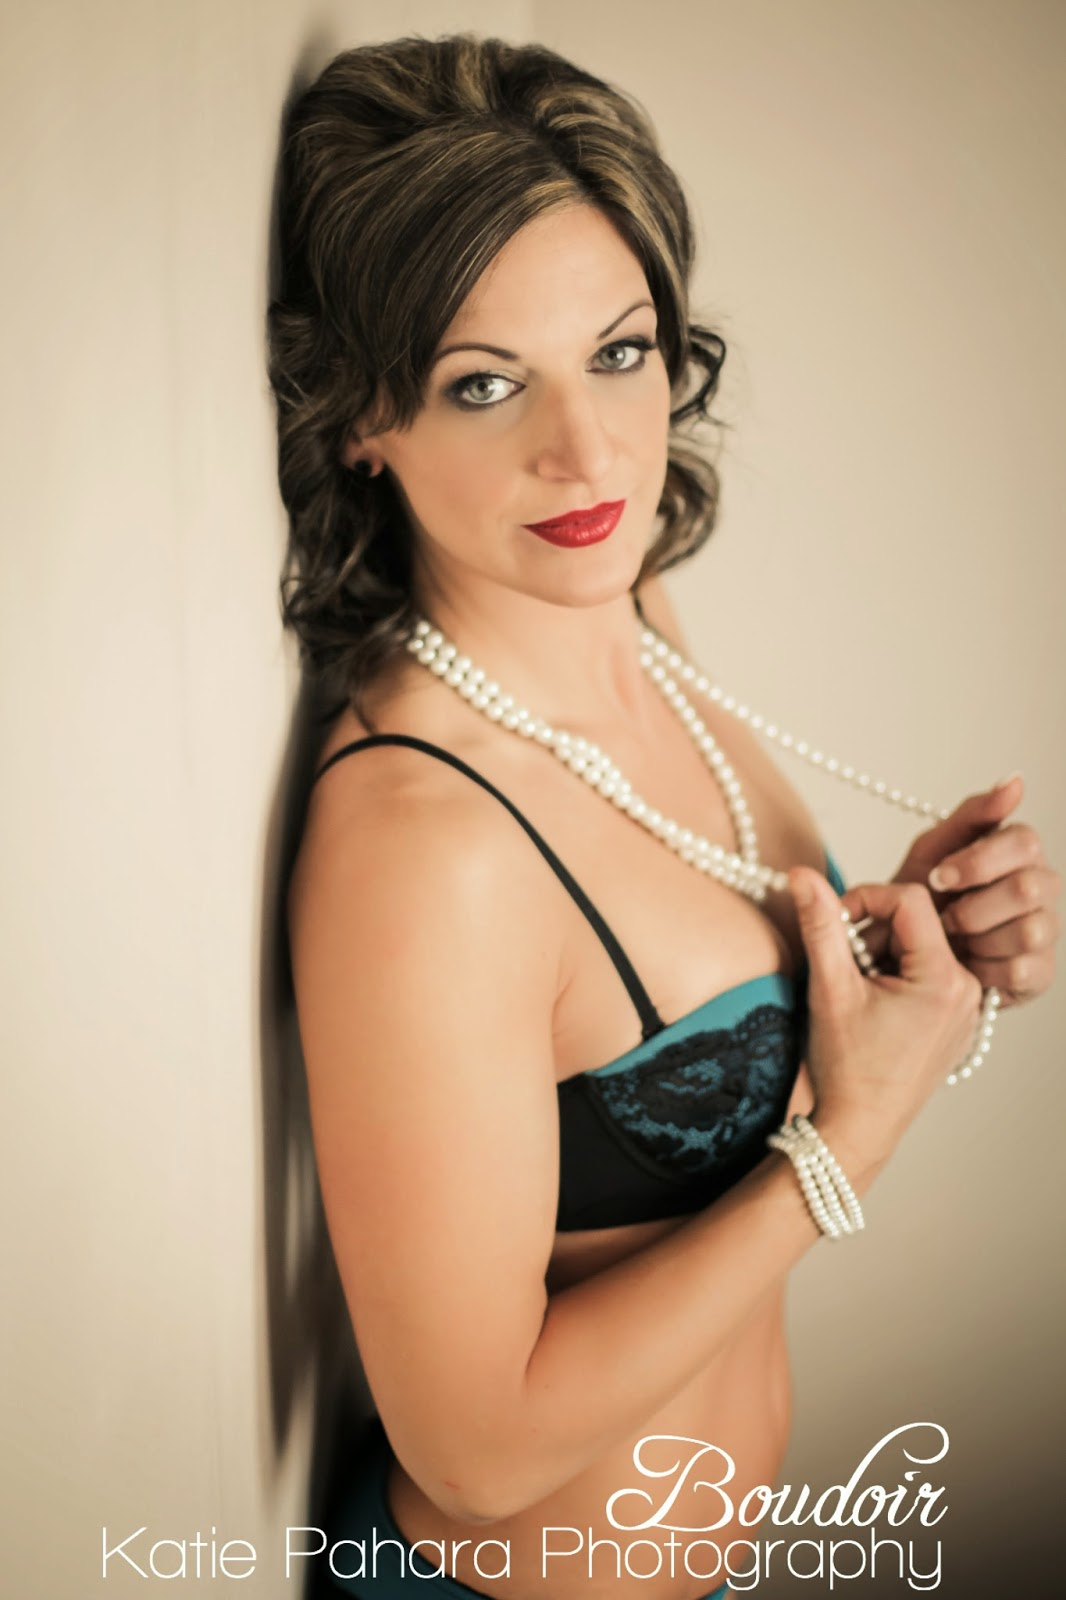 Boudoir Photography Lethbridge, Alberta